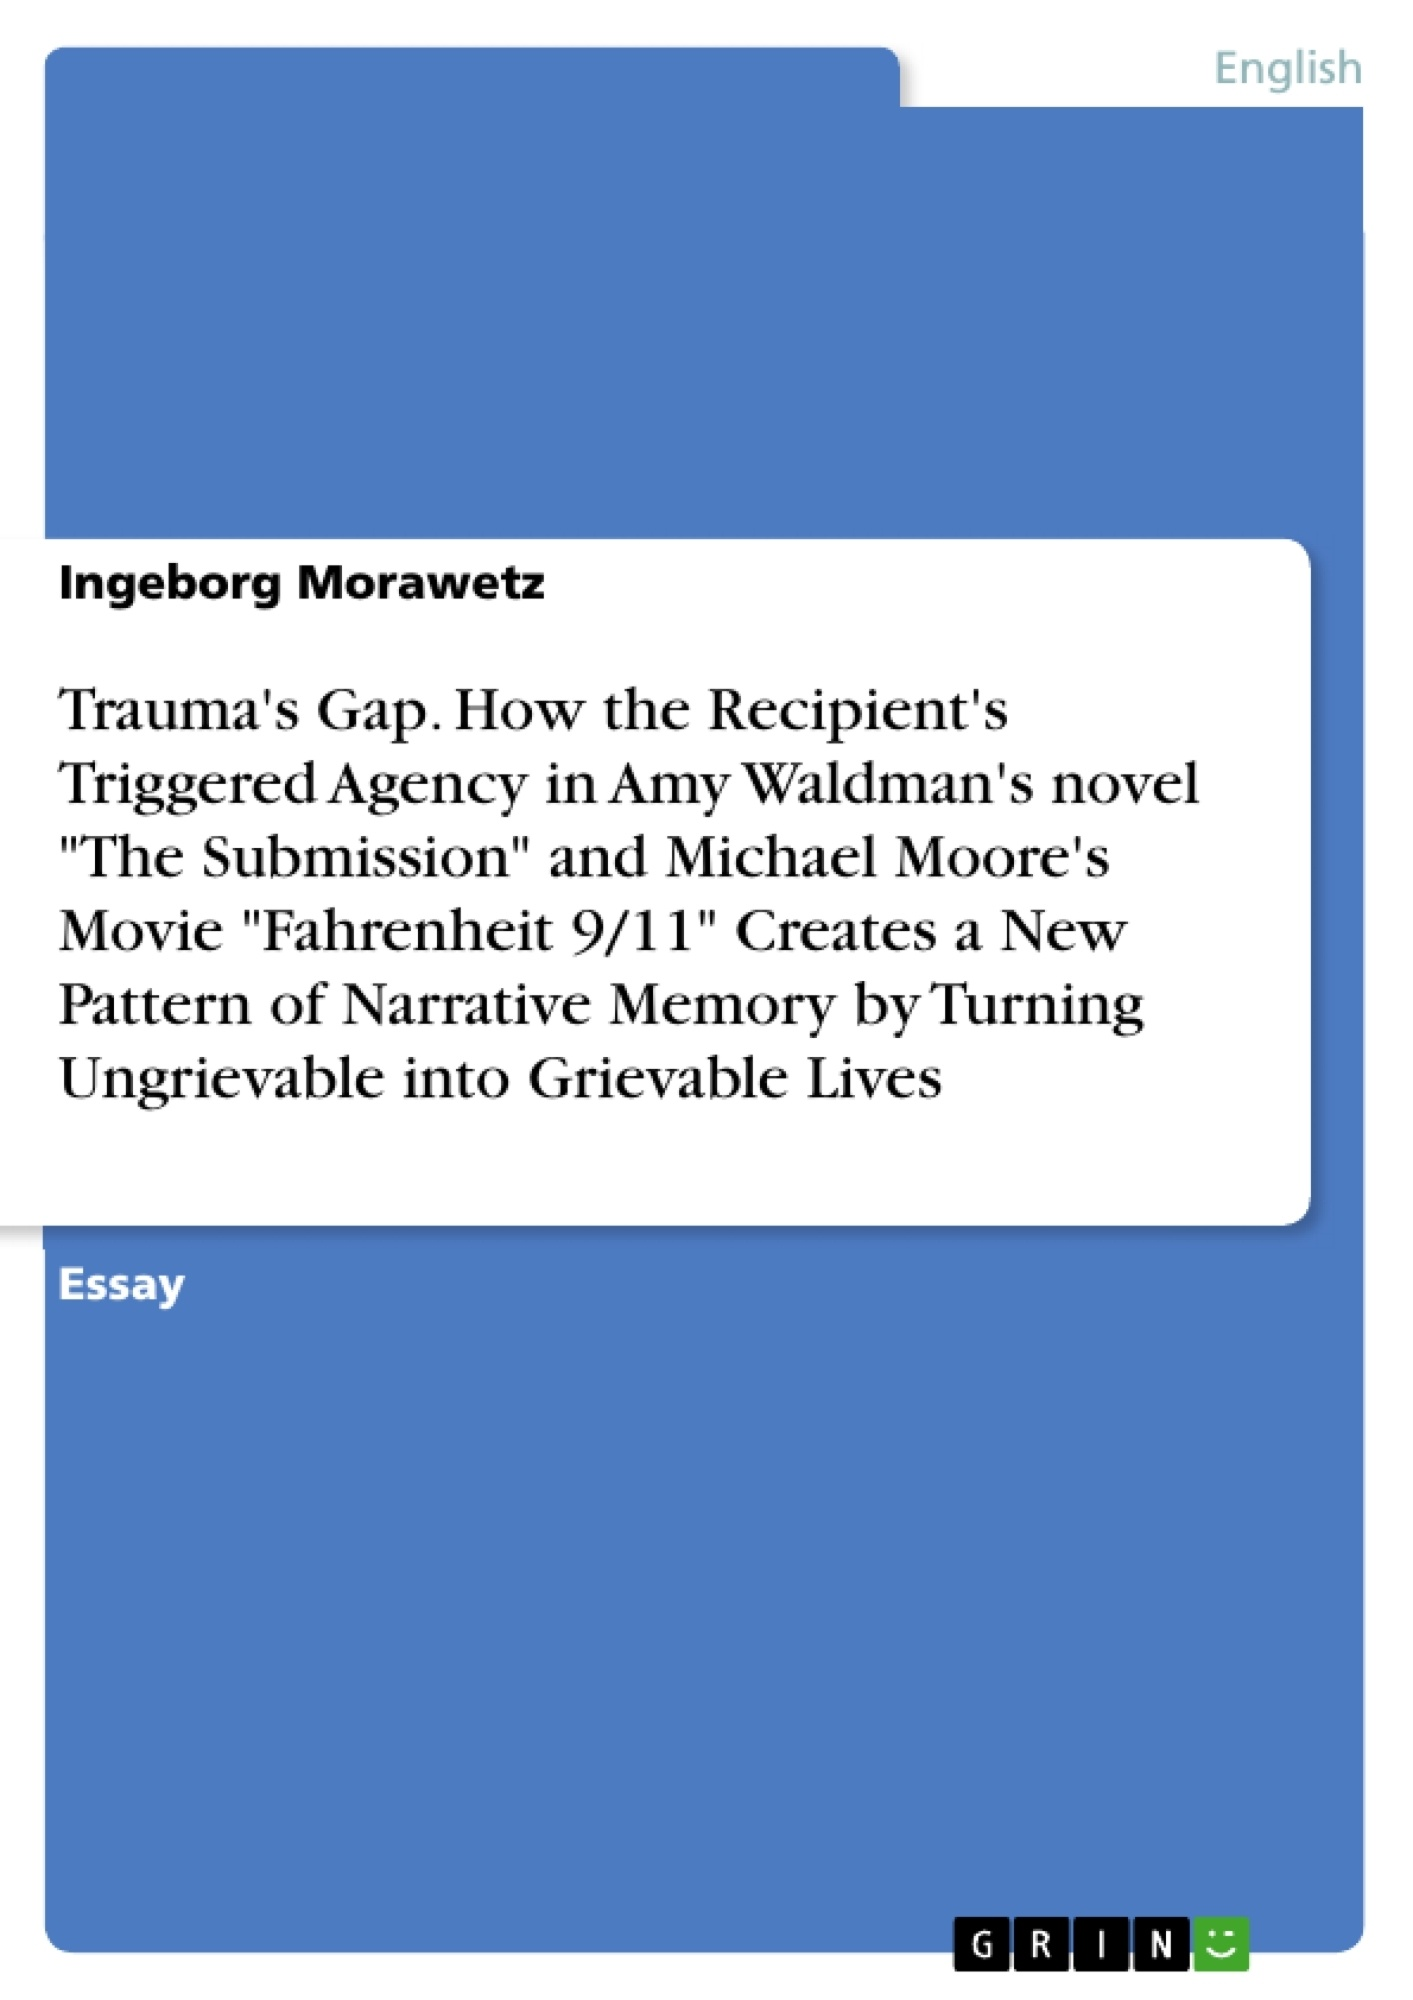 """Title: Trauma's Gap. How the Recipient's Triggered Agency in Amy Waldman's novel """"The Submission"""" and Michael Moore's Movie """"Fahrenheit 9/11"""" Creates a New Pattern of Narrative Memory by Turning Ungrievable into Grievable Lives"""